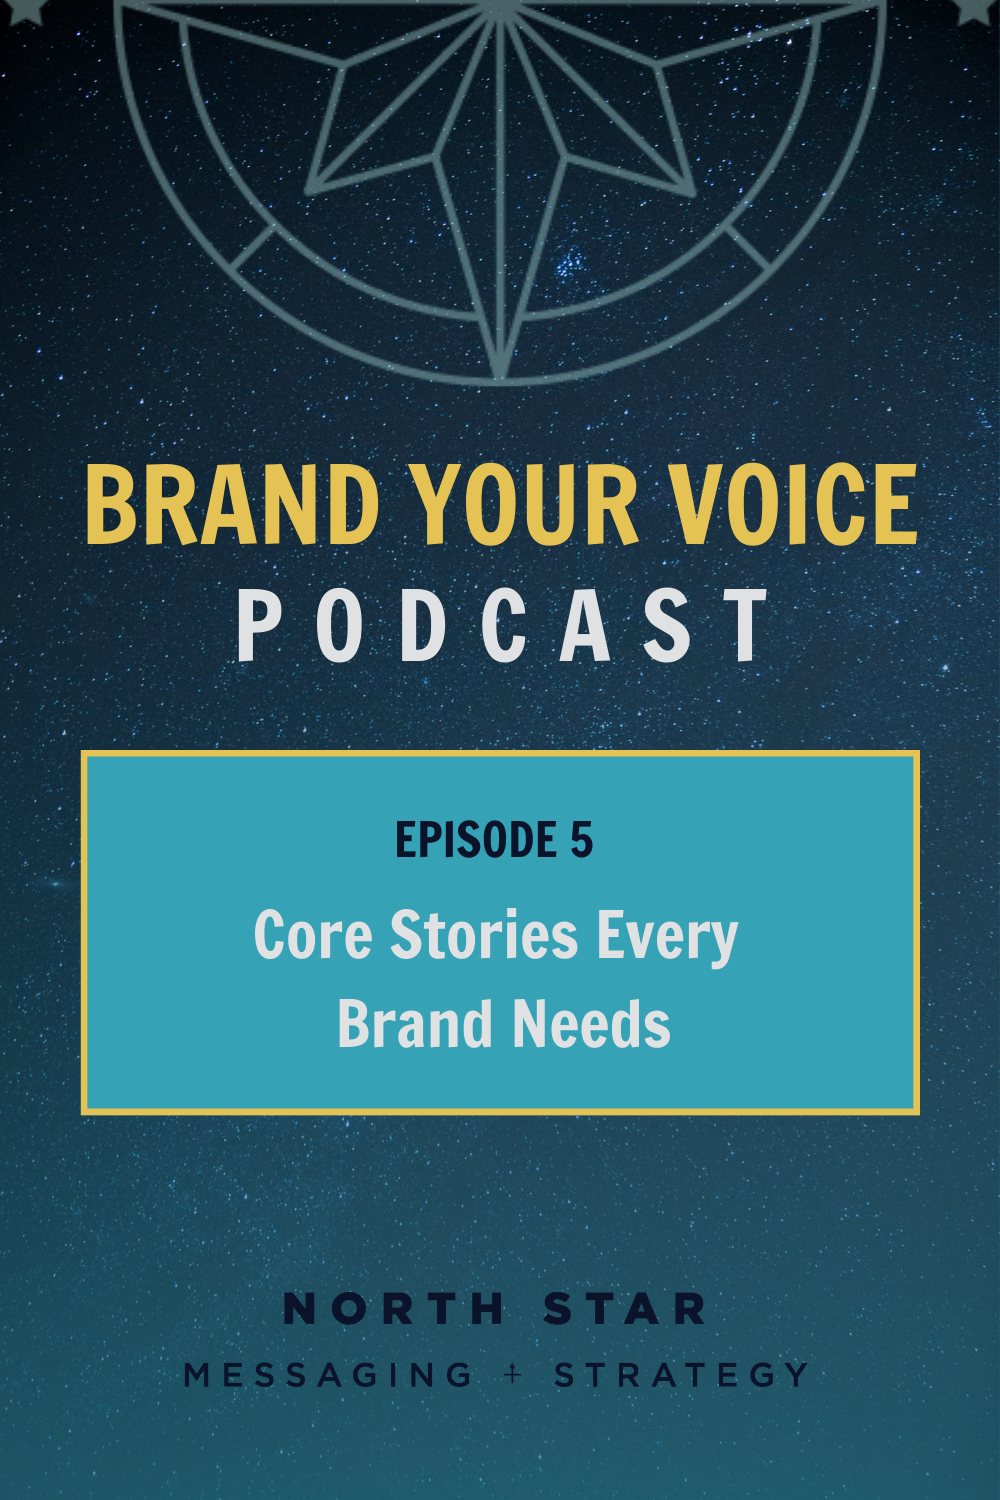 EPISODE 5: Core Stories Every Brand Needs